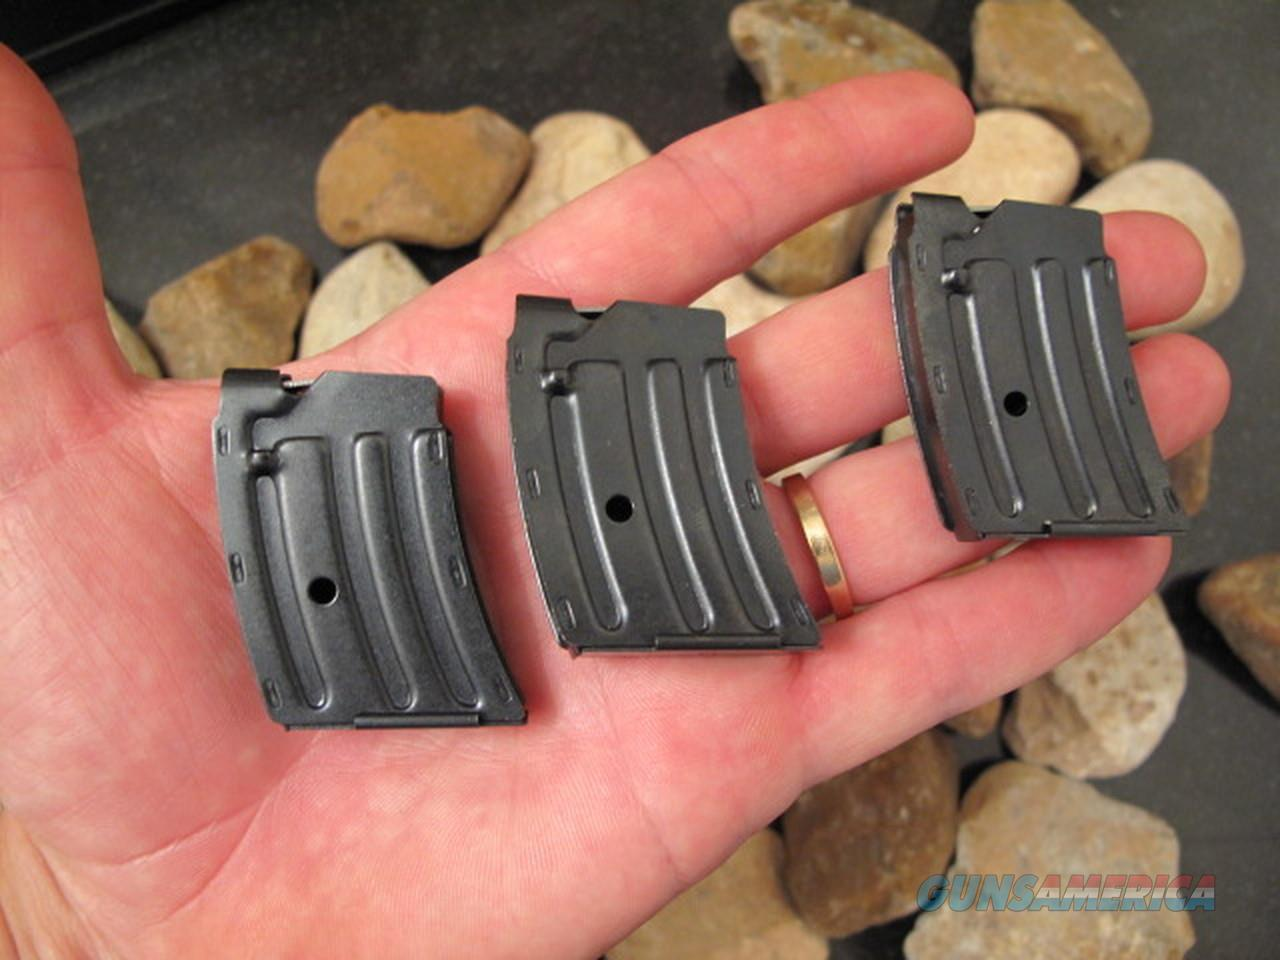 3-Pack 22 LR Fits BROWNING MODEL 52 .22LR 5RD Magazine USA Made Reproduction MAG  Non-Guns > Ammunition